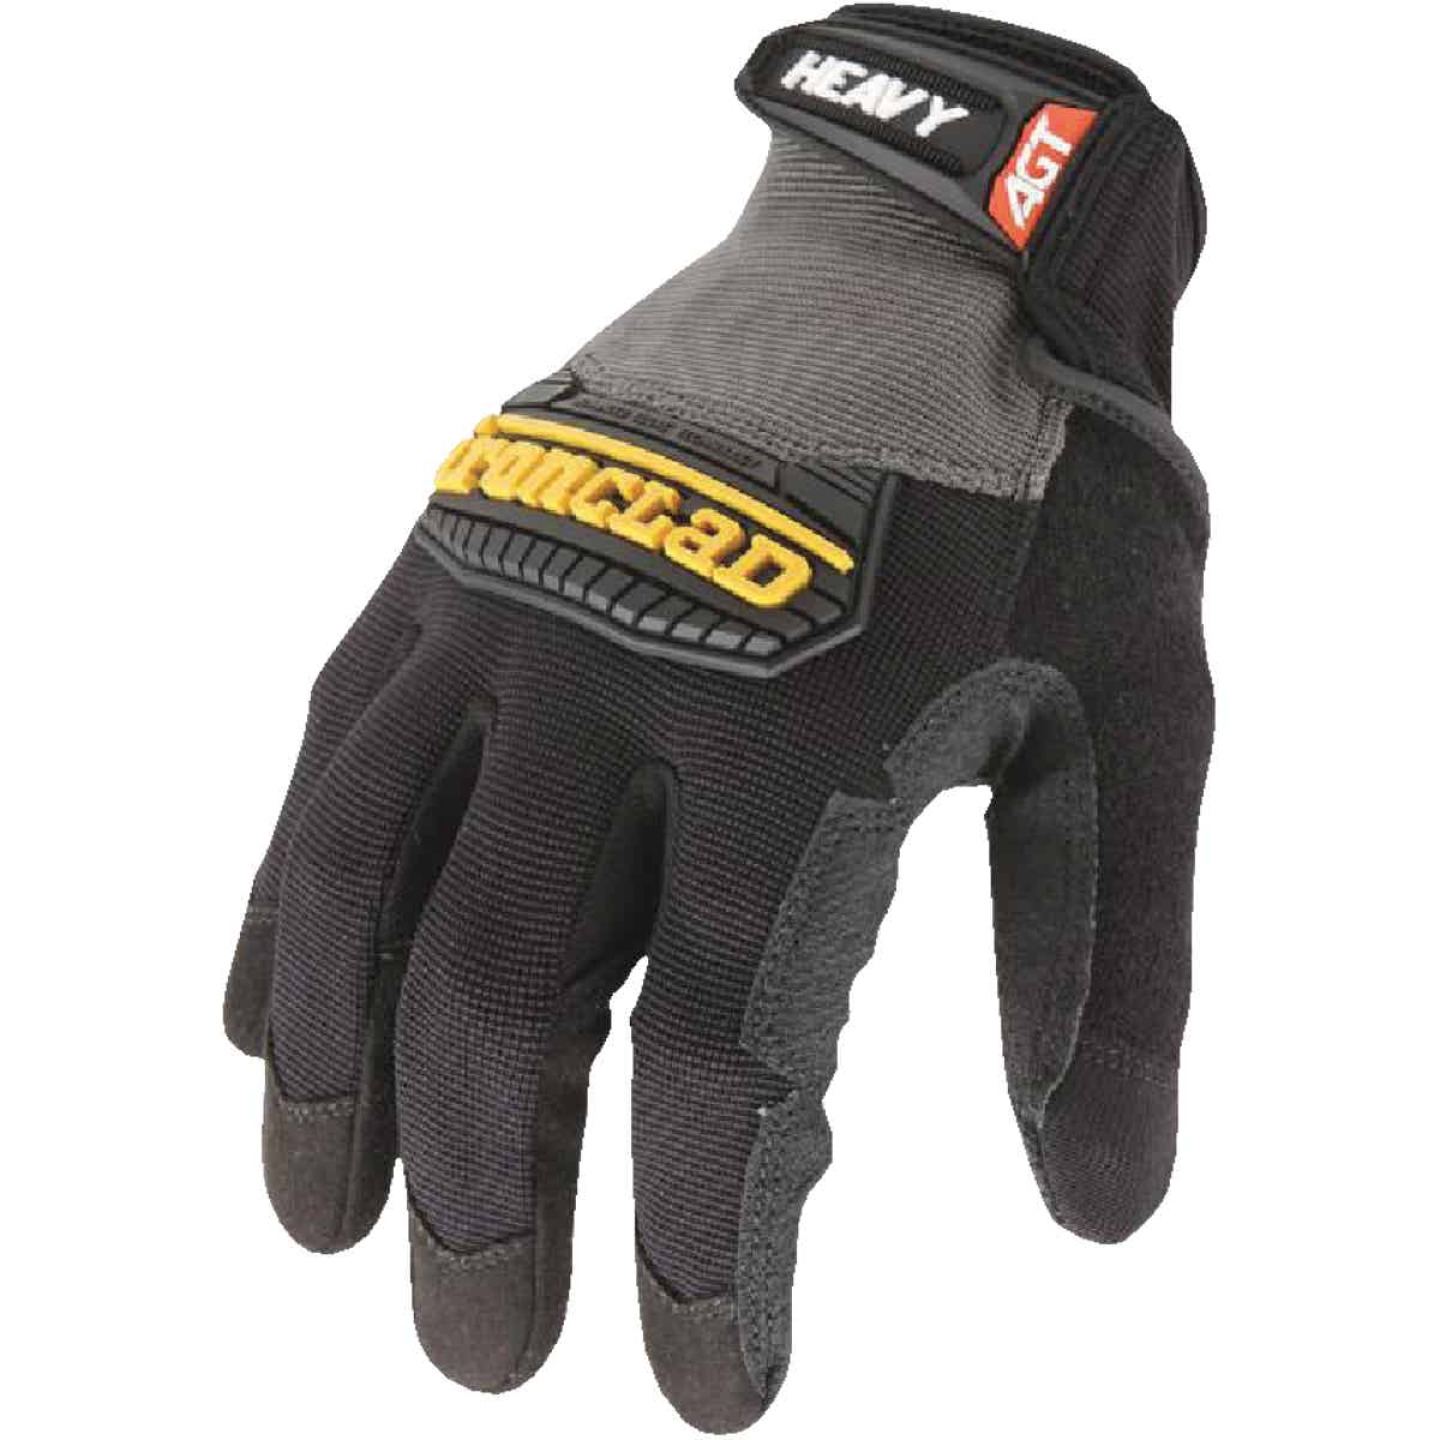 Ironclad Heavy Utility Men's XL Synthetic Leather High Performance Glove Image 4